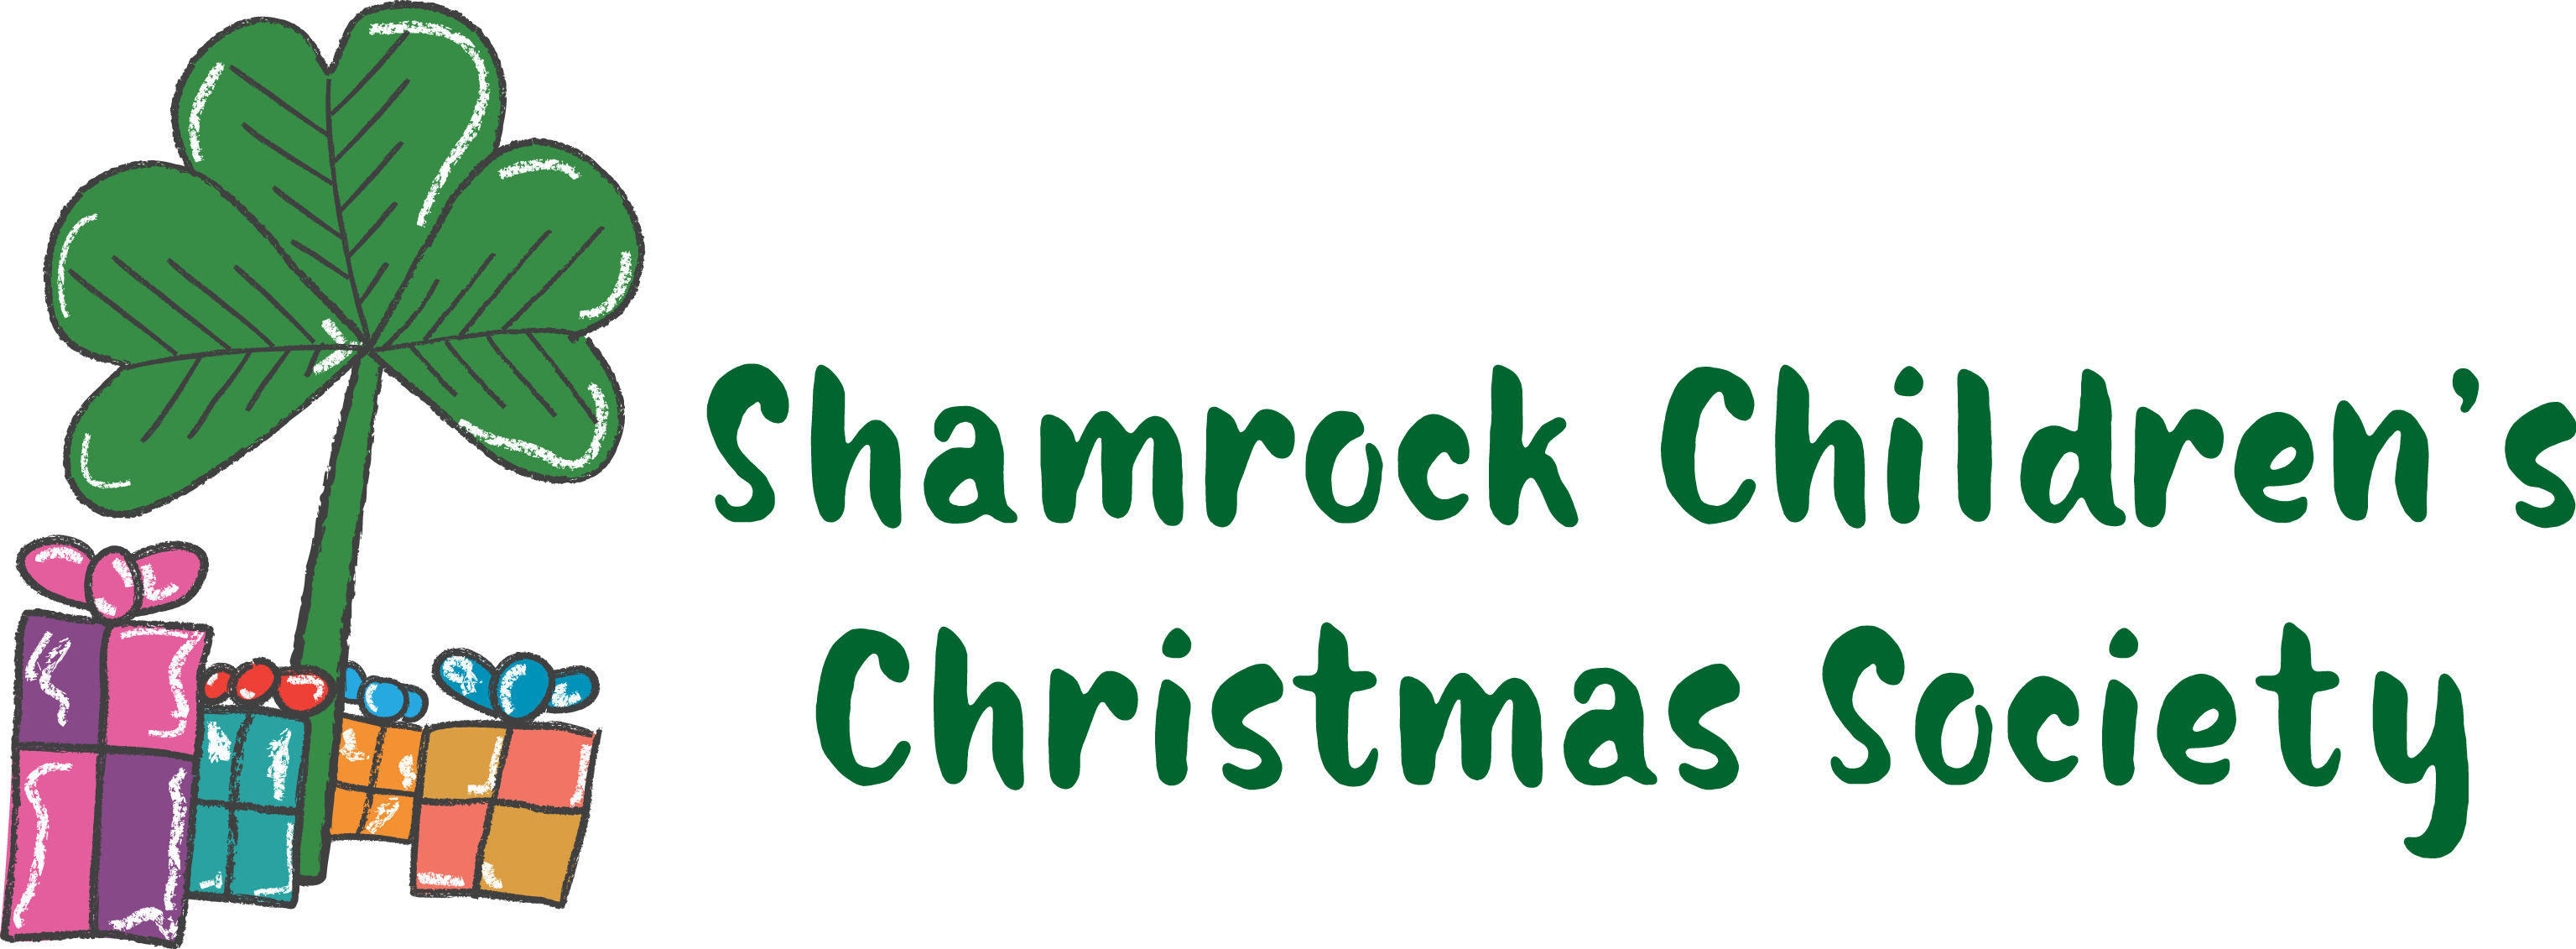 The Shamrock Children's Christmas Society